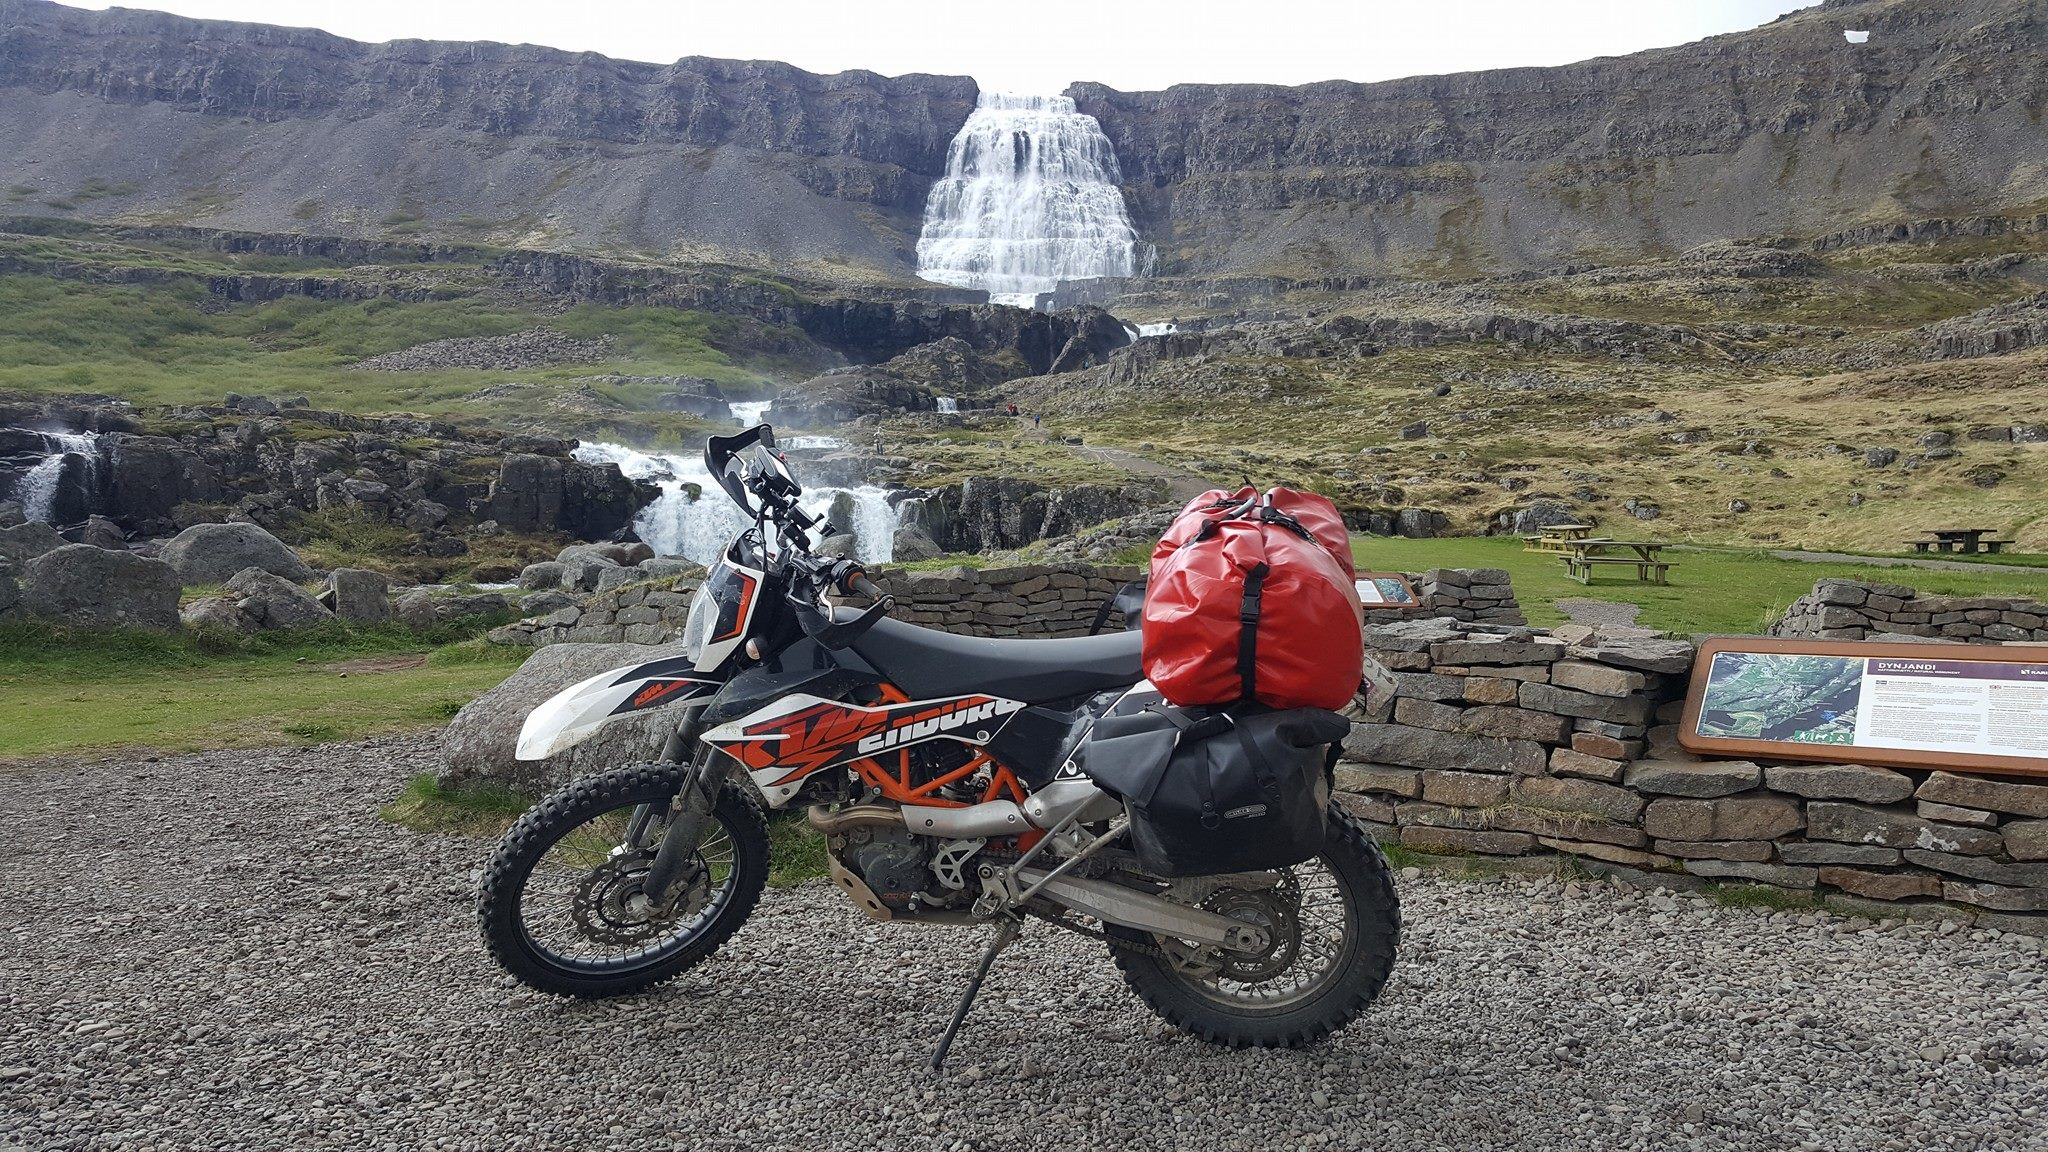 Dynjandi waterfall gets it's name - the Thunderer - from the loud roar that echoes in the narrow fjord.